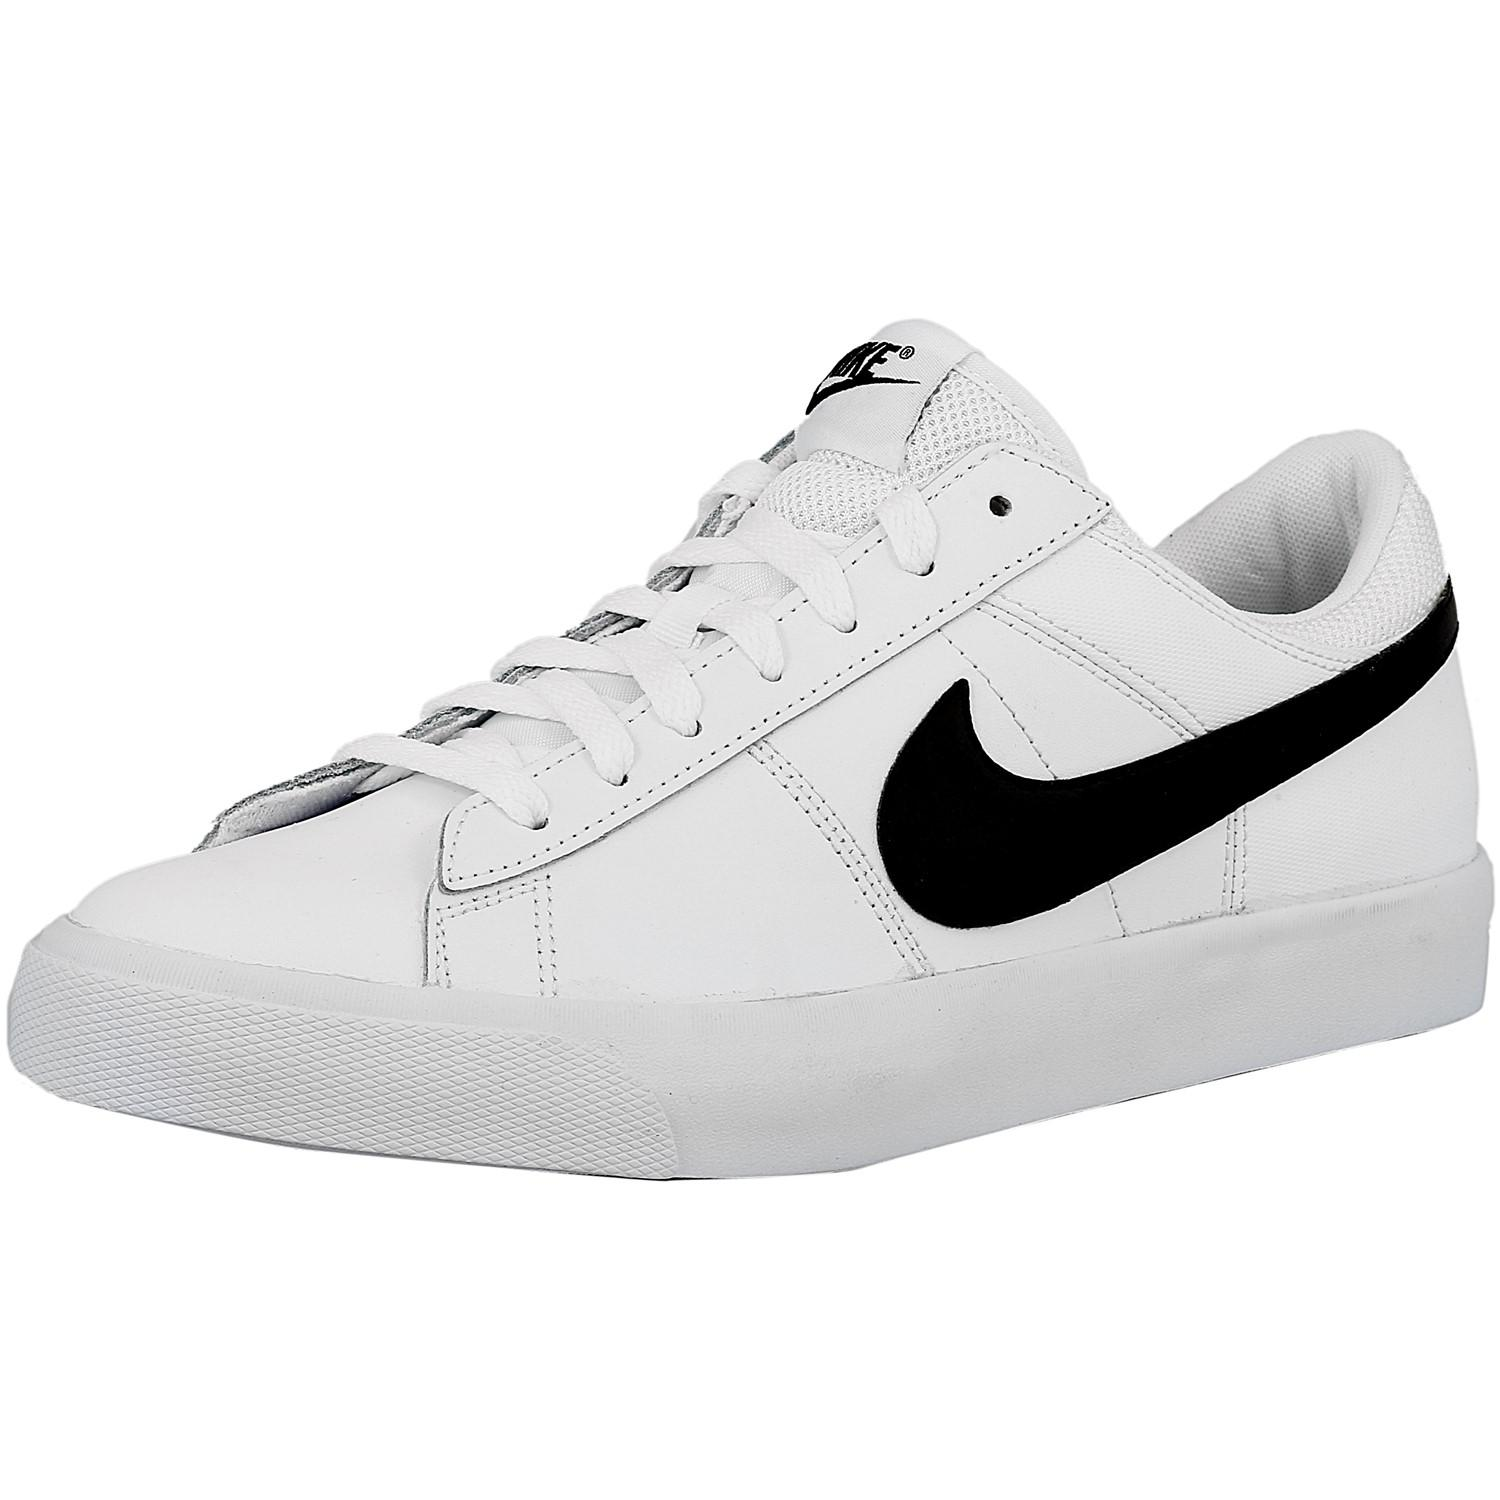 the best attitude ff22e 5defa nike-White-Black-Black-White-Match-Supreme-White-Black-black-white-Ankle- high-Leather-Tennis-Shoe.jpeg